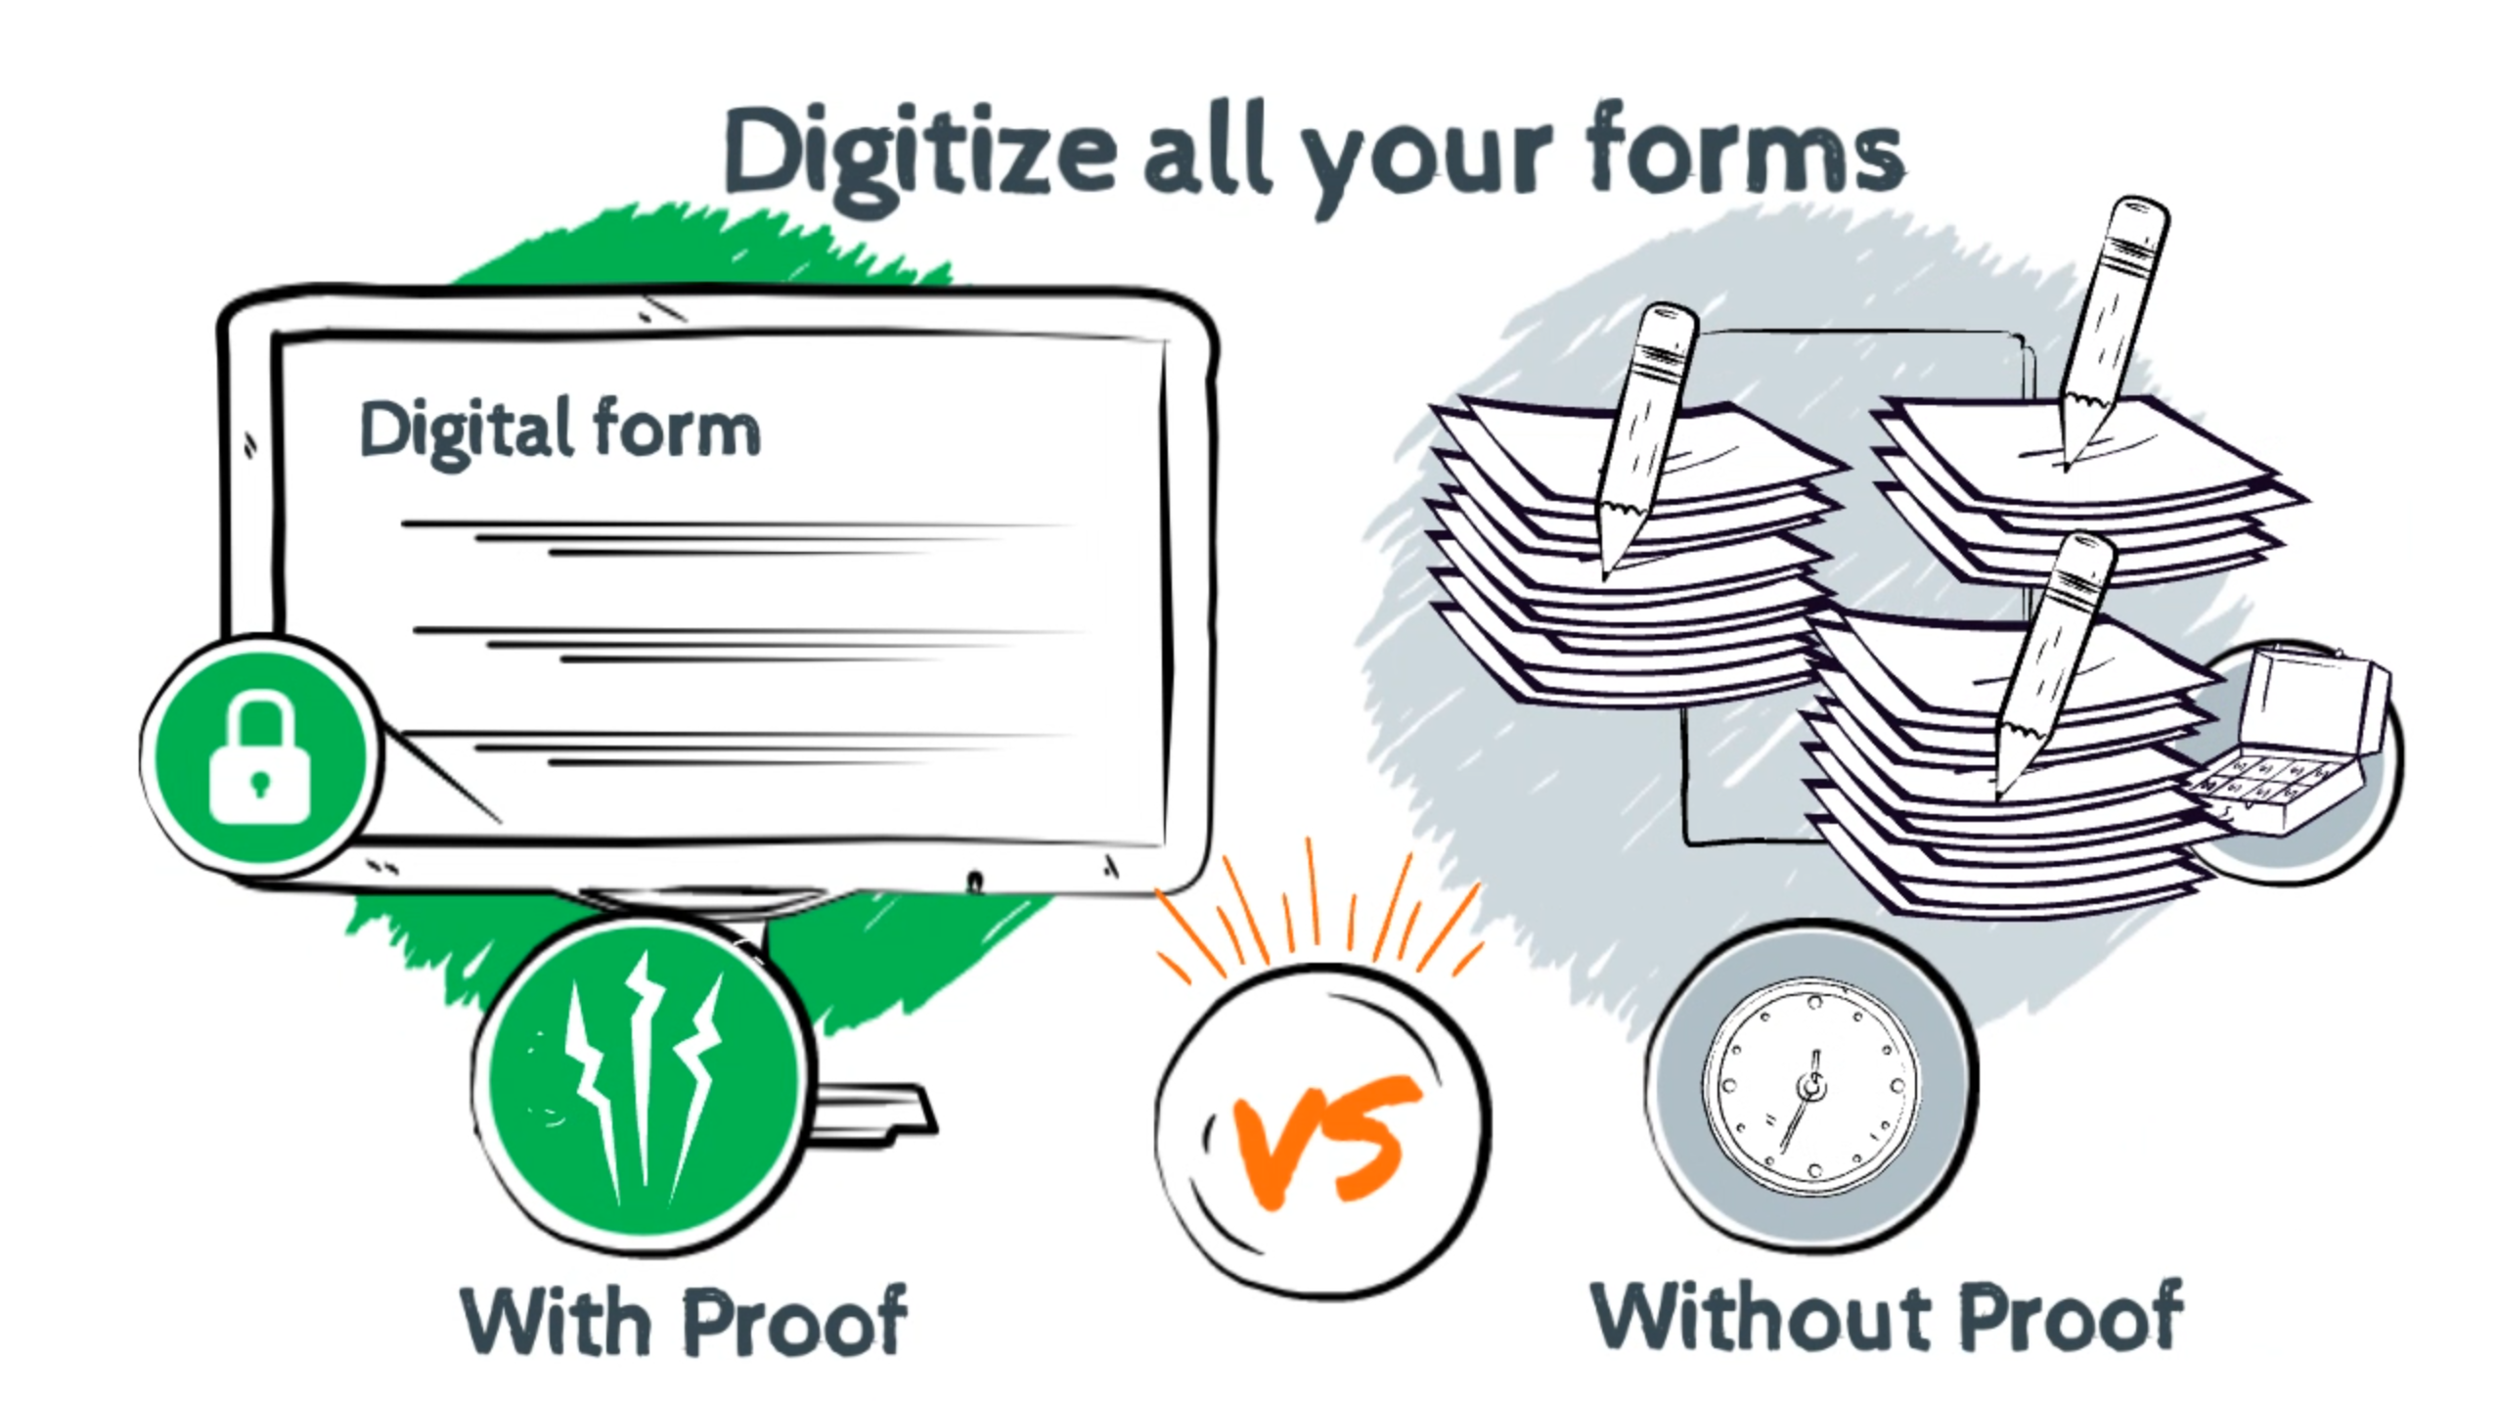 Go Paperless with Digital Forms - Proof empowers governments to go paperless with web-based forms and a central platform for approvals.